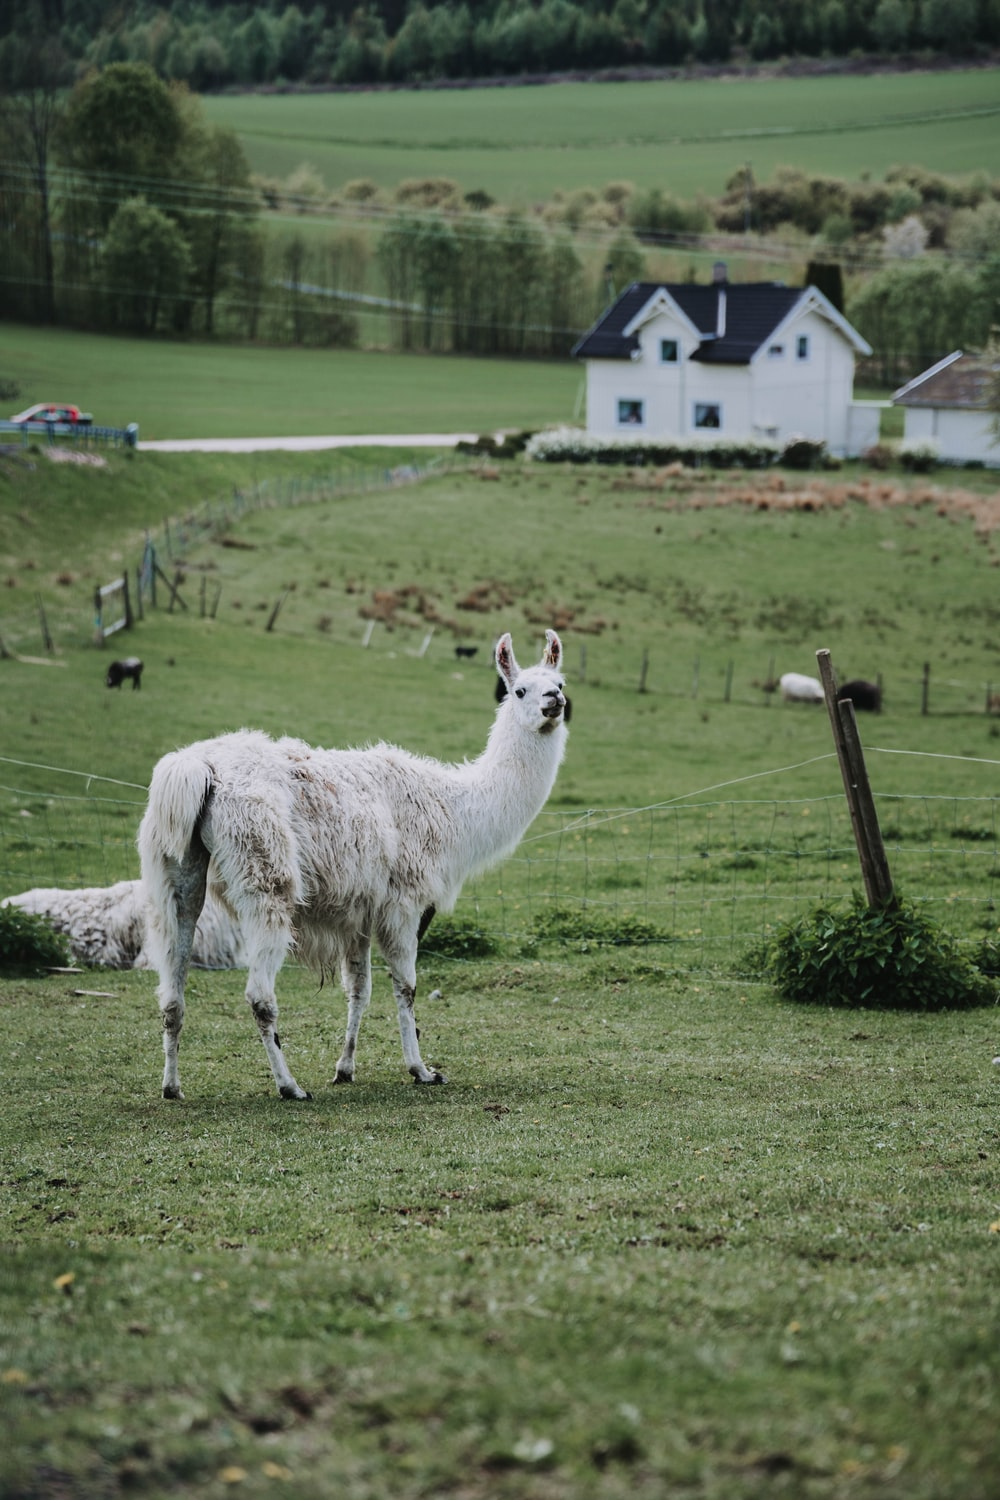 white llama on green grass field during daytime